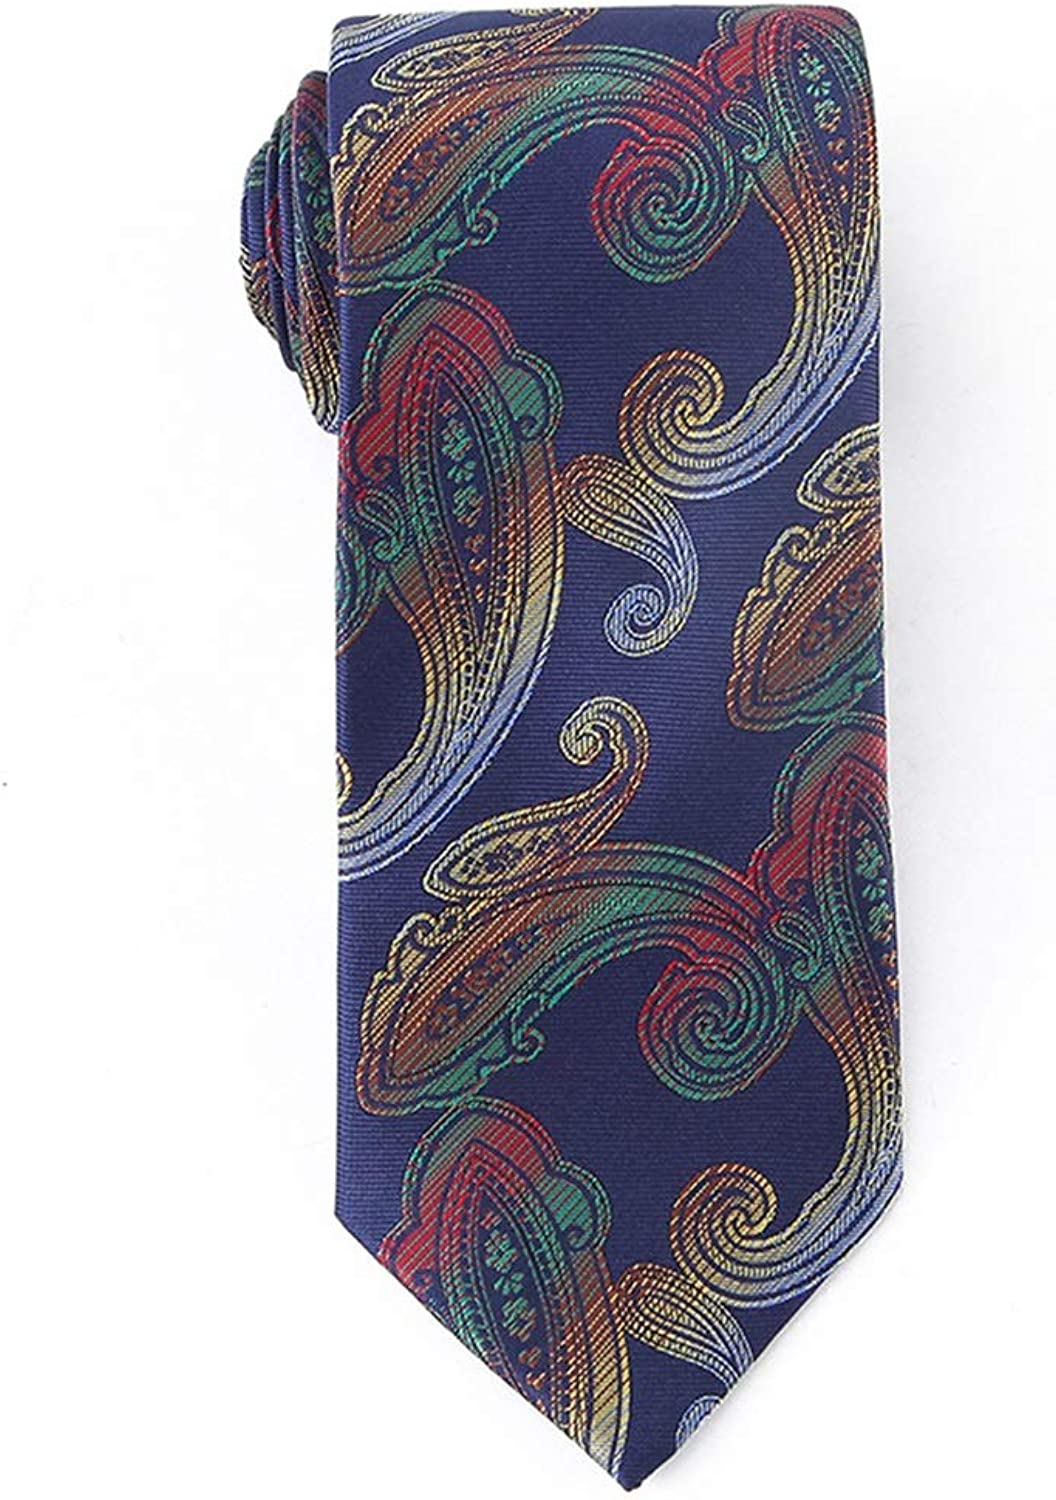 Polyester Textile Men's Neckties Flowers Great Gradient Pattern for Weddings Missions Dances Groom Groomsmen Gifts 7.5cm Wide (color   blueee)